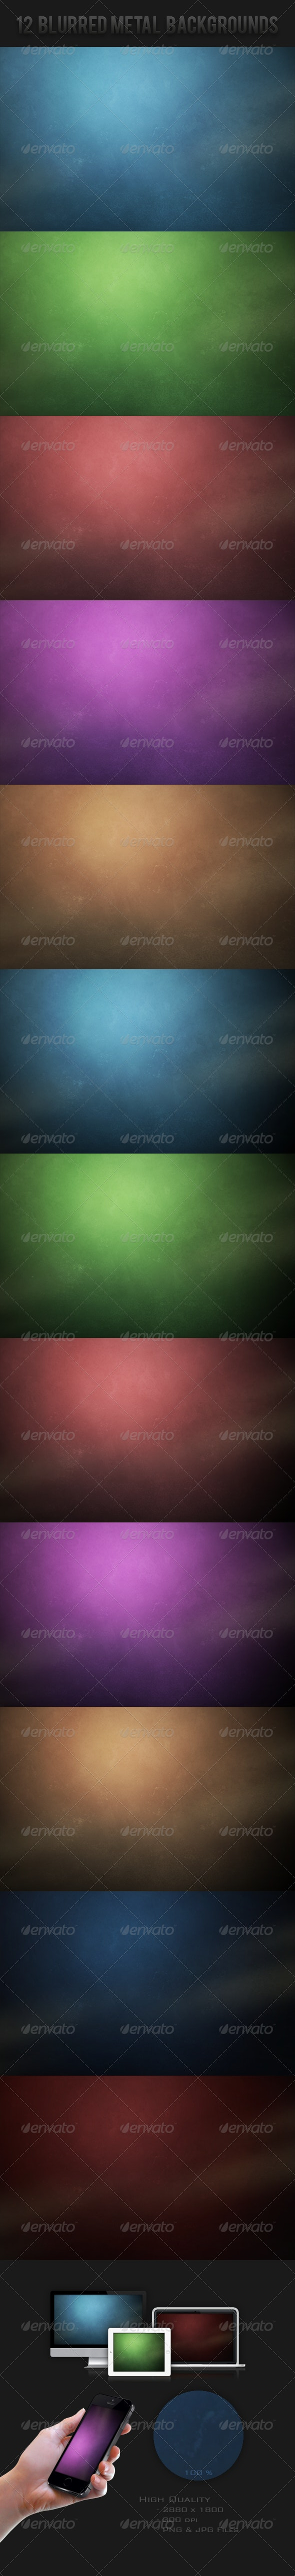 Blurred Metal Backgrounds - Abstract Backgrounds